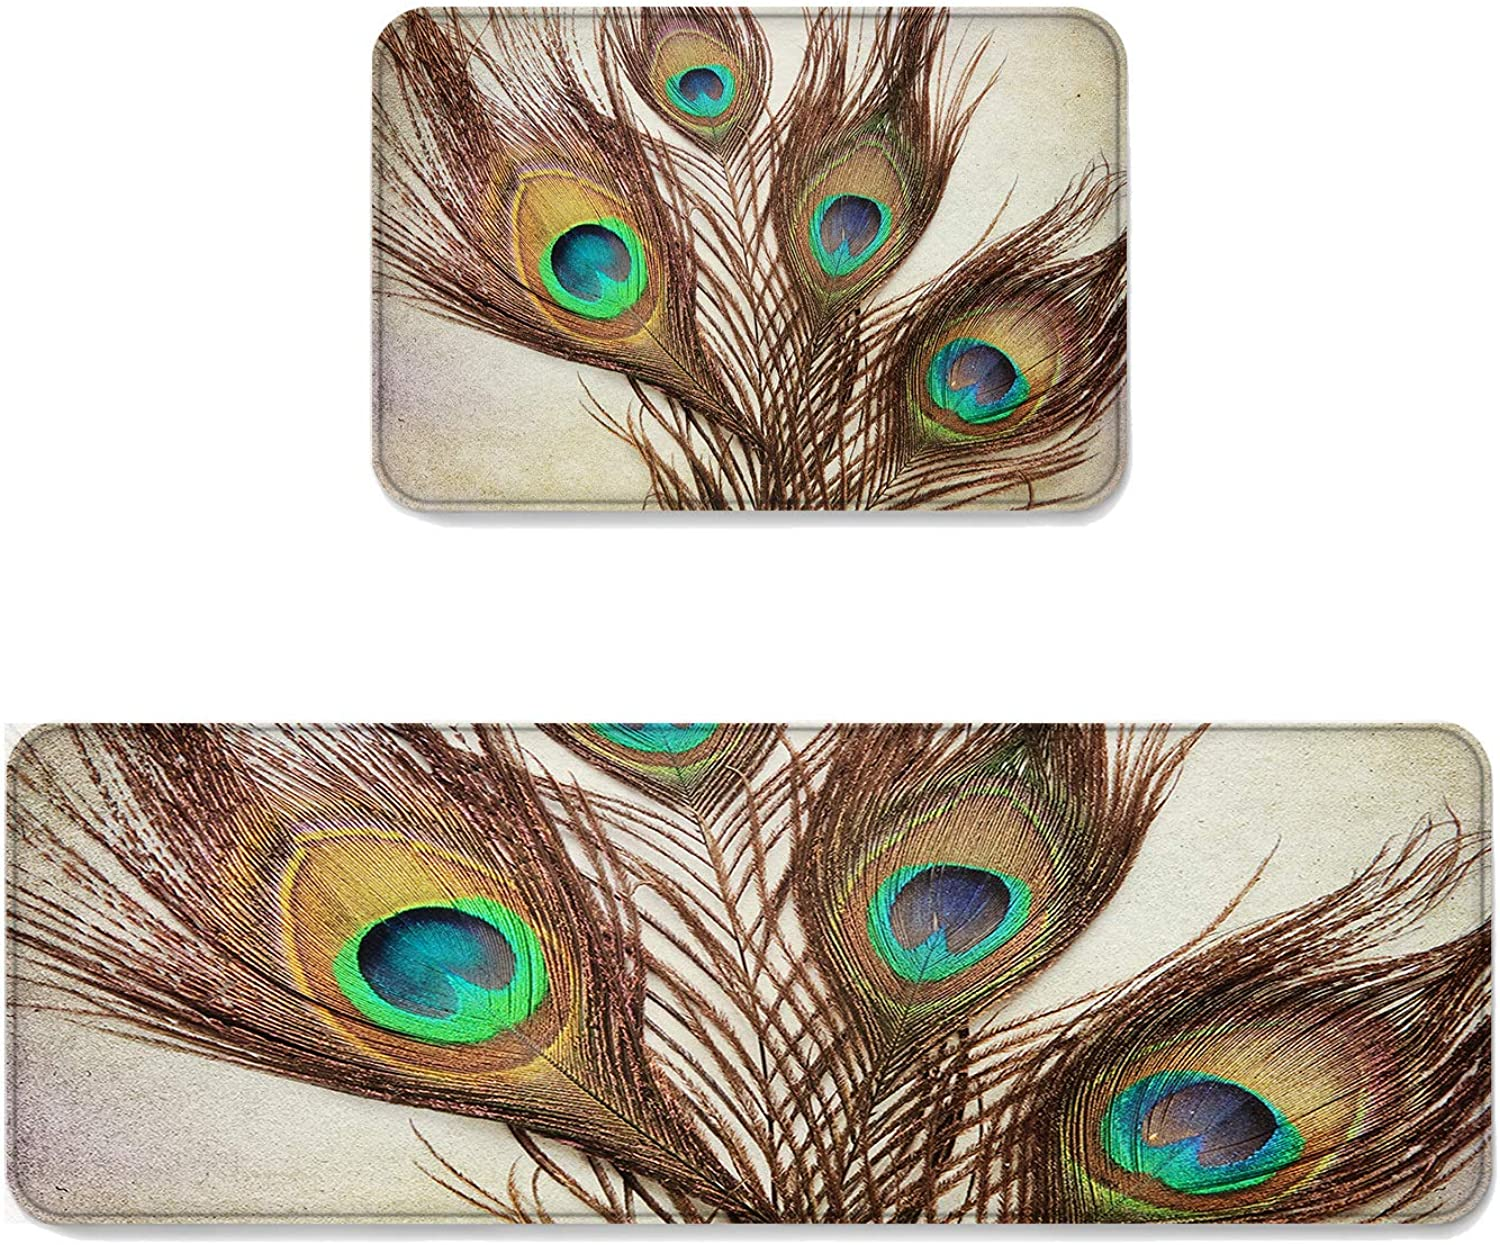 Fantasy Star Kitchen Rug Sets 2 Piece Floor Mats Non-Slip Rubber Backing Area Rugs Peacock Feather Doormat Washable Carpet Inside Door Mat Pad Sets (19.7  x 31.5 +19.7  x 63 )